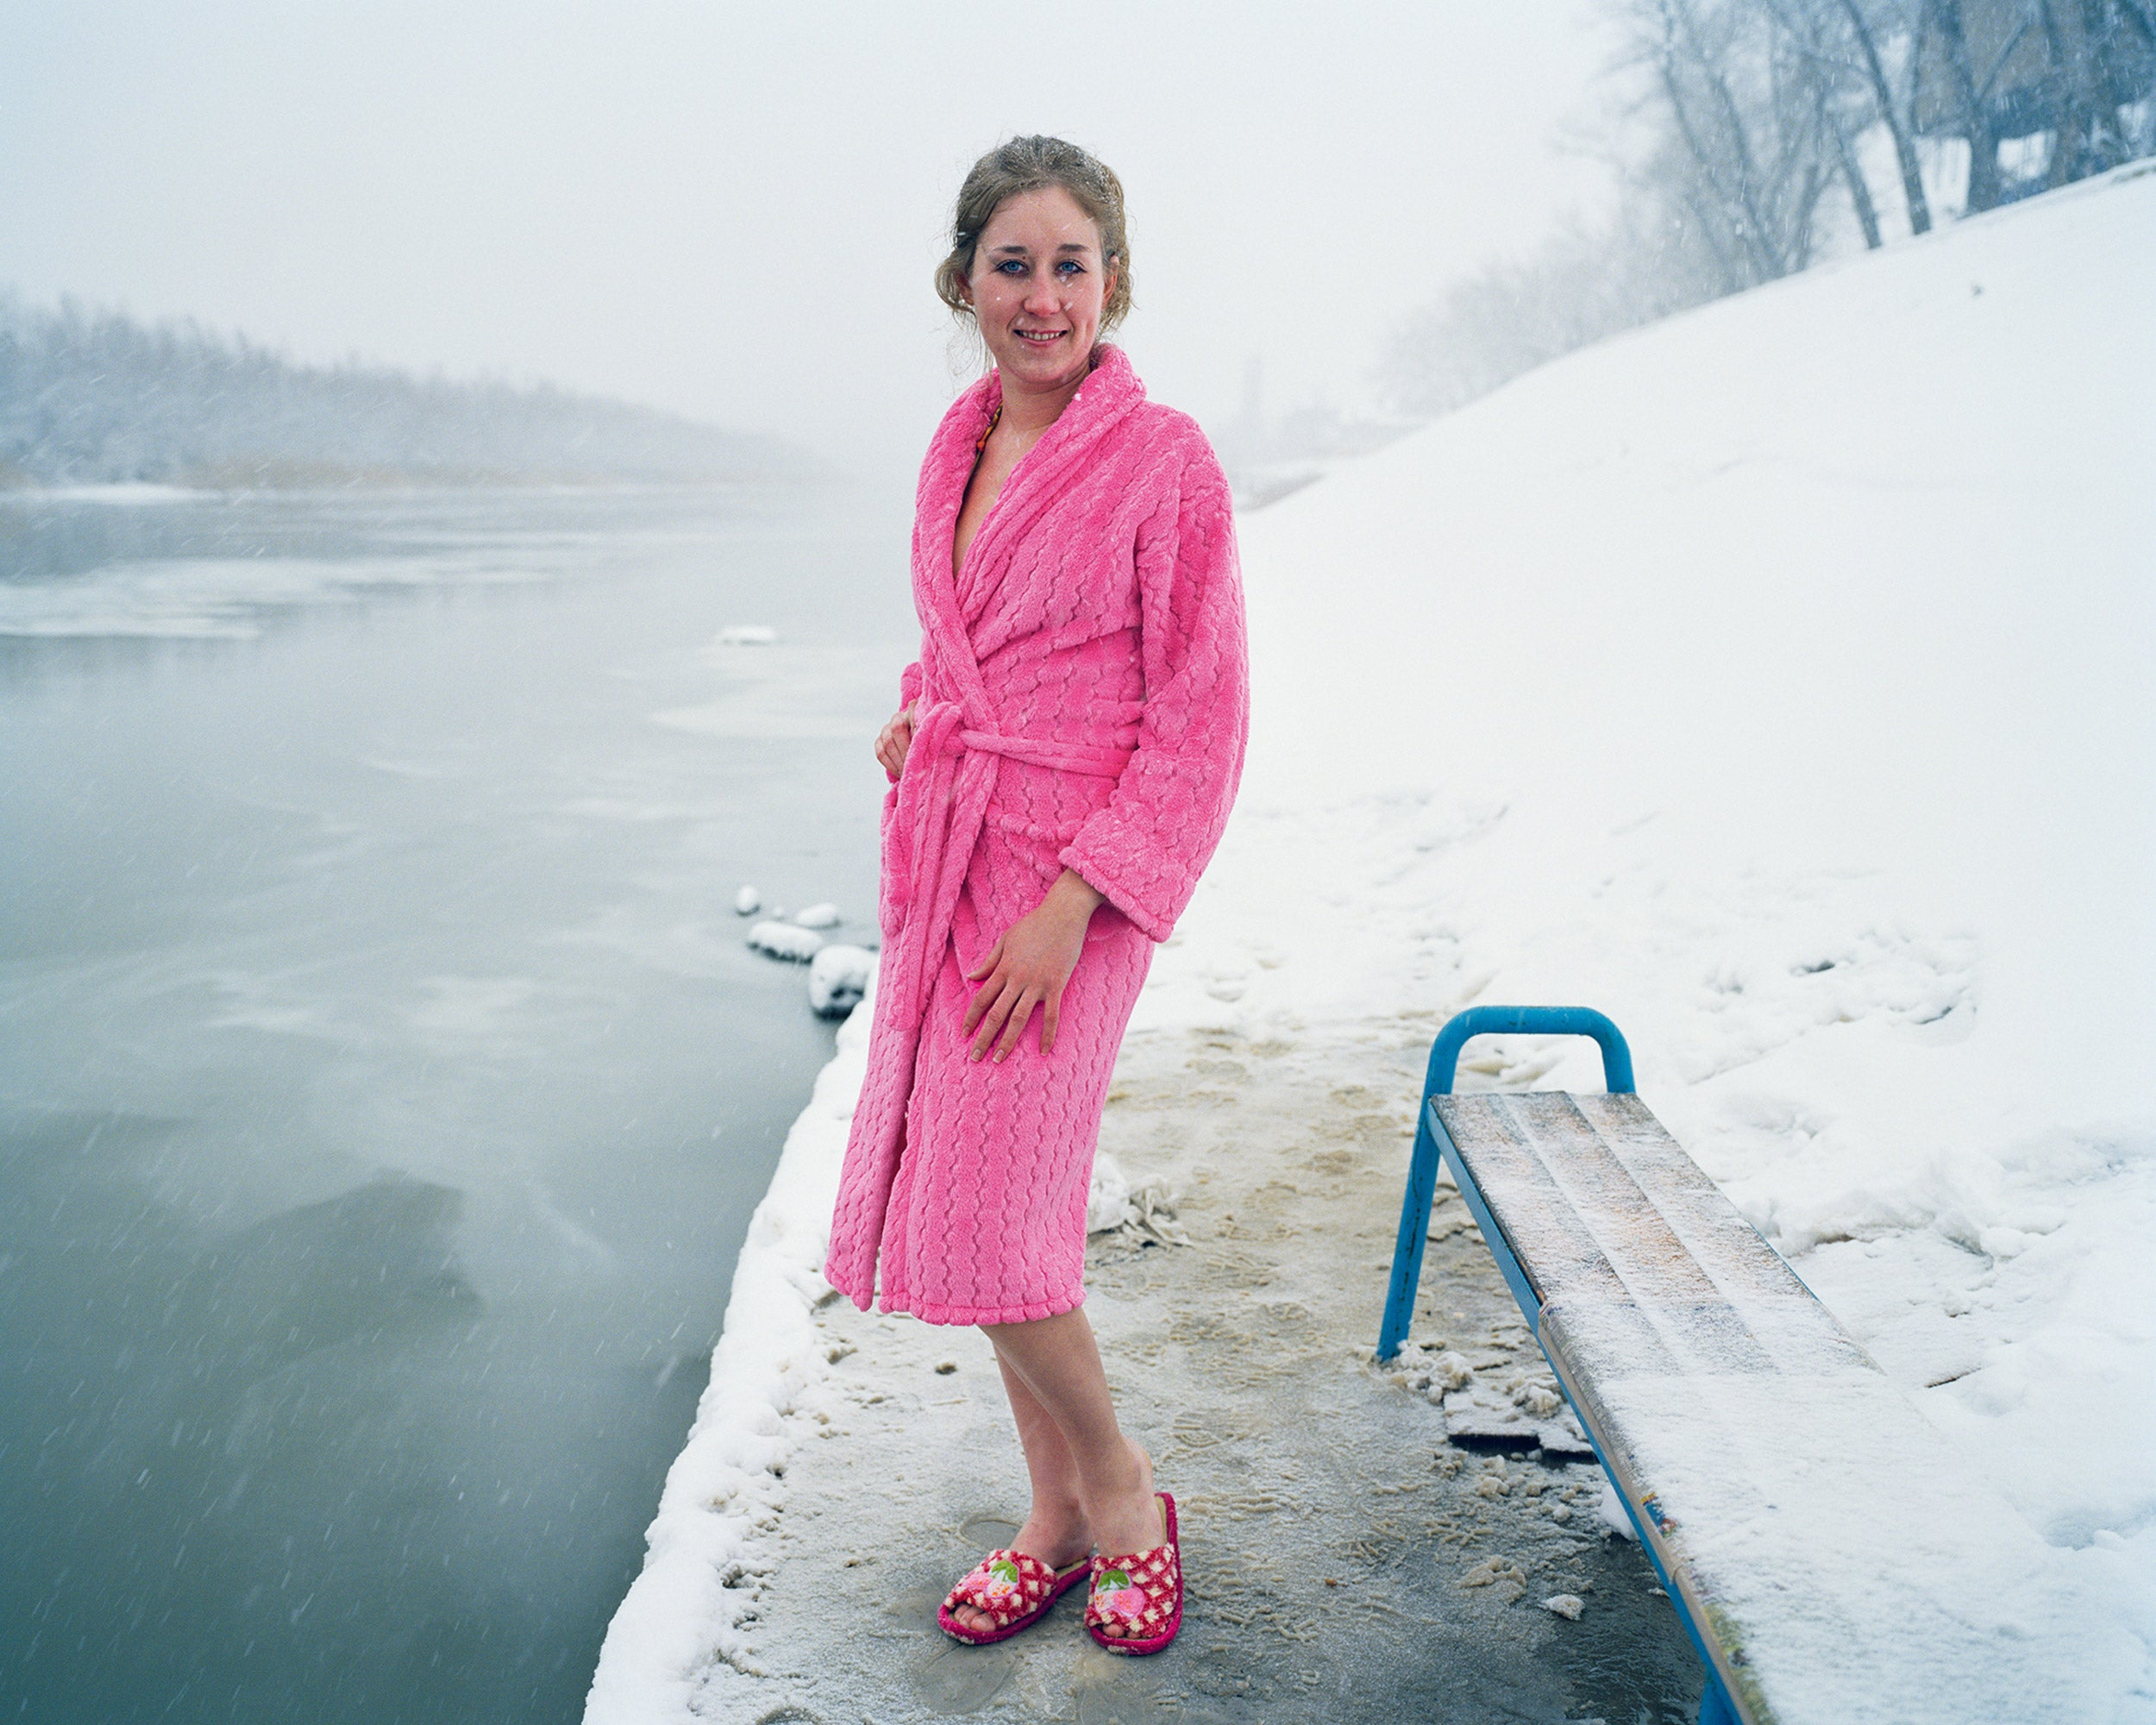 A young woman poses before entering the icy water in Astrakhan, Russia.